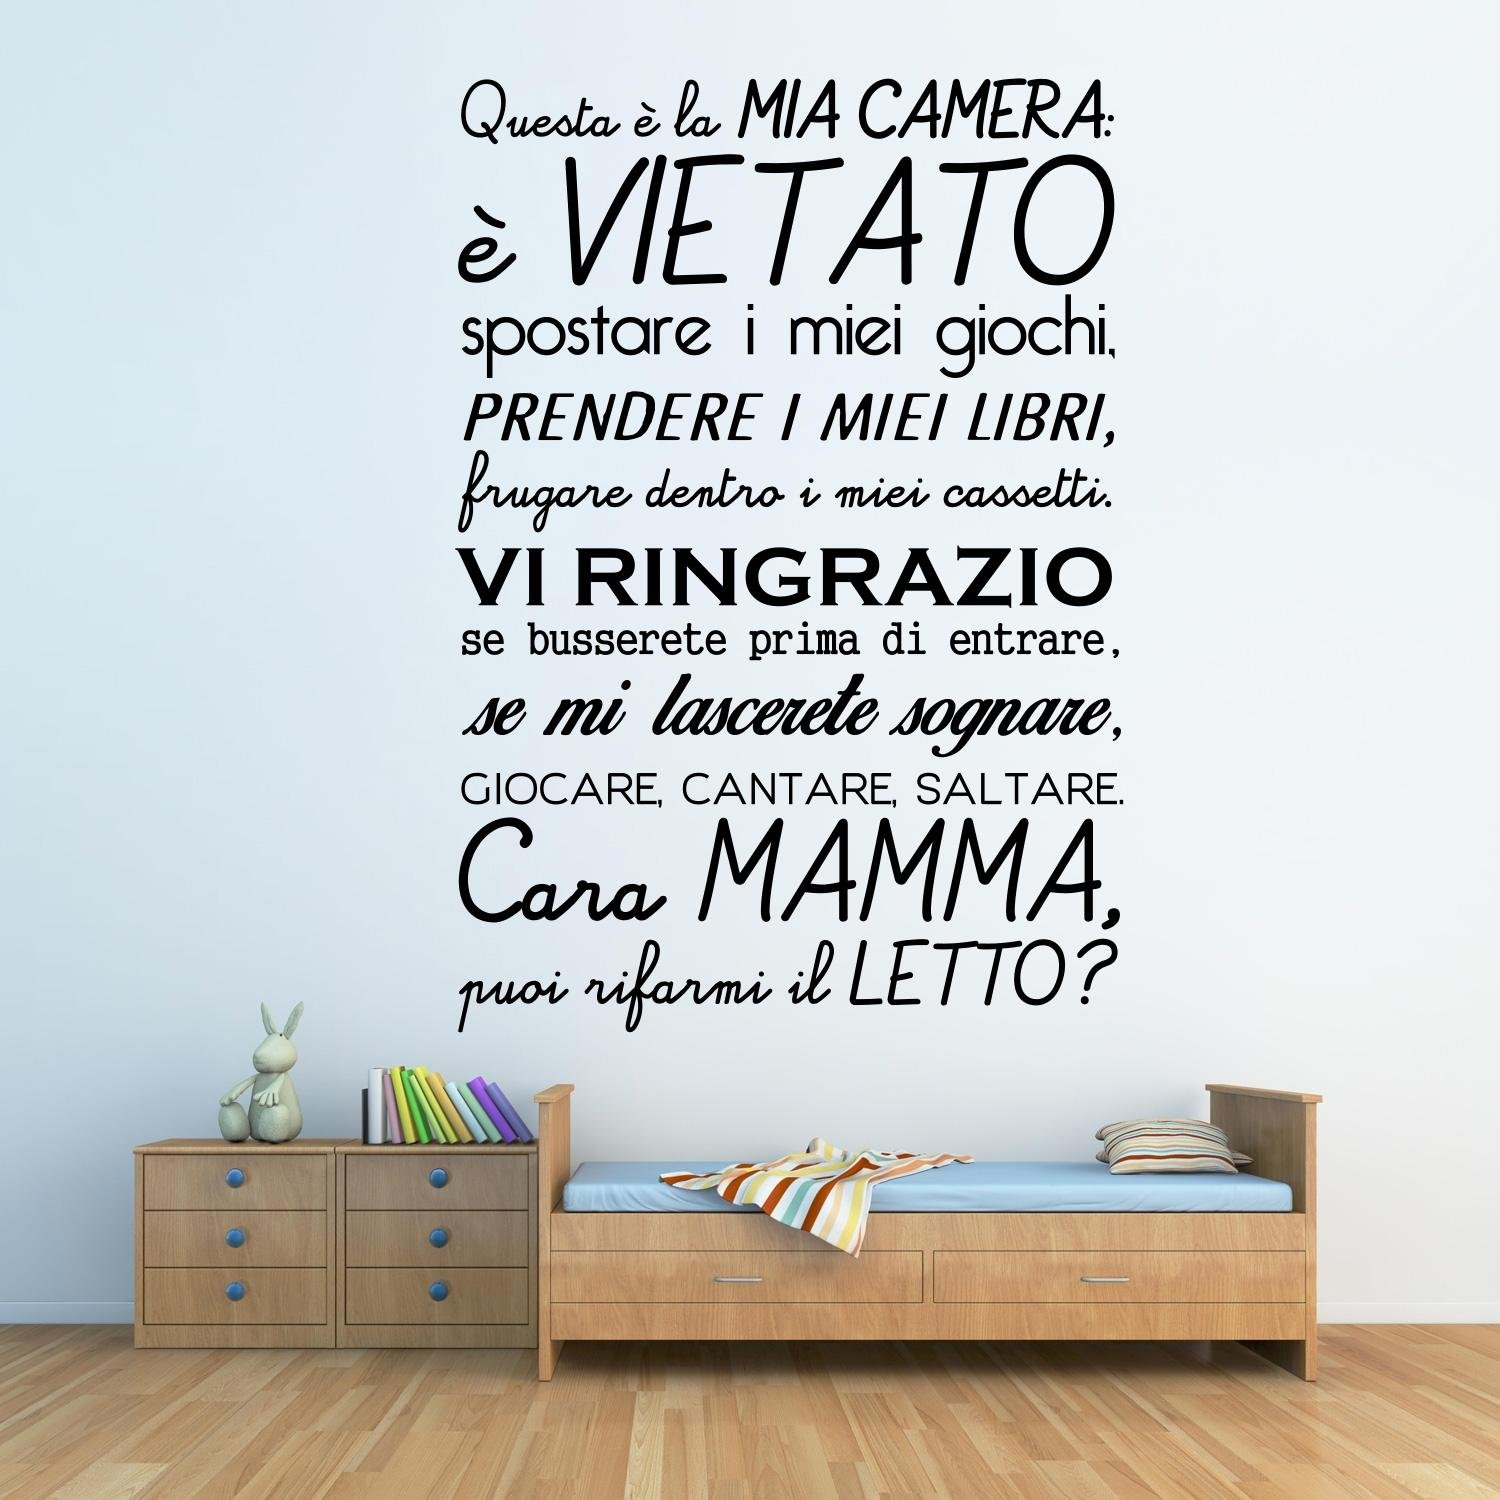 Beautiful Frasi Di Cucina Ideas - Acomo.us - acomo.us